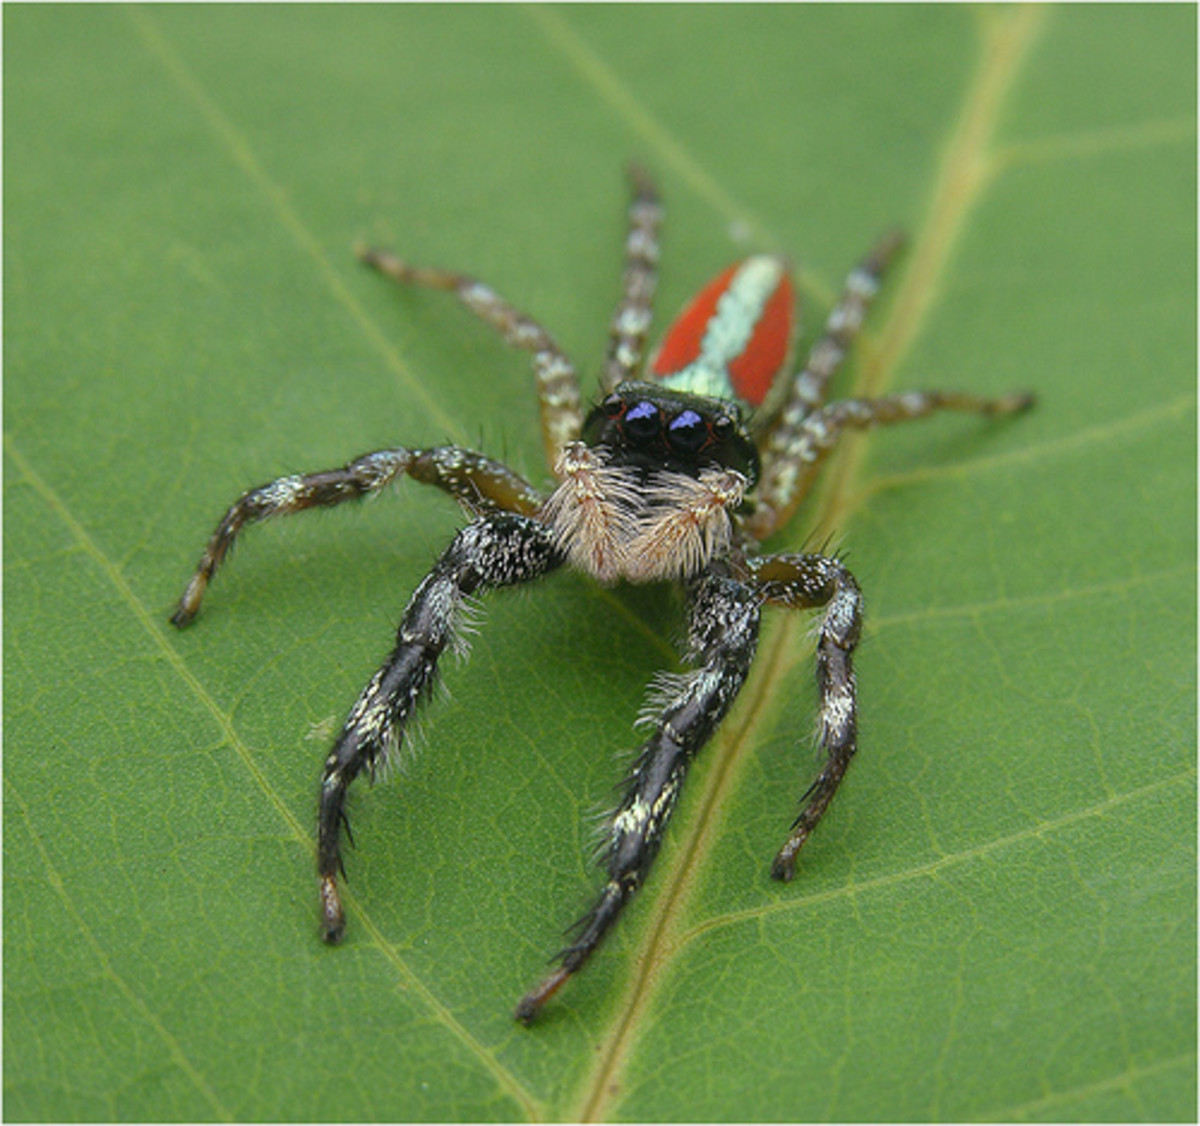 Some Important Species of Insects in Amazon Rainforest ... - photo#10